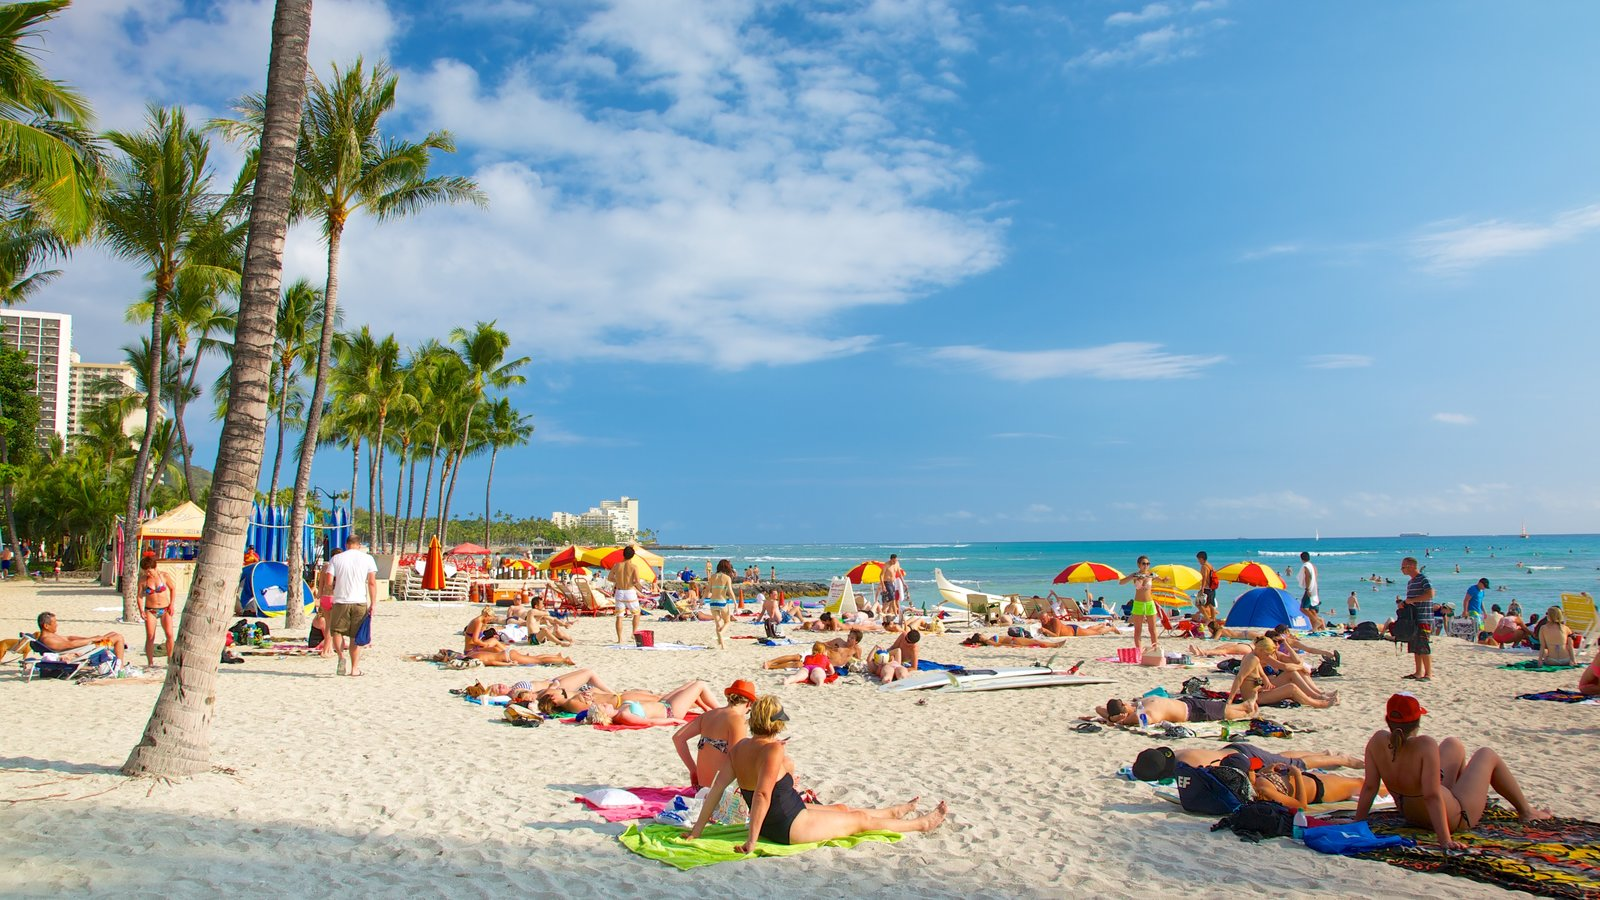 Oahu Island which includes a beach and tropical scenes as well as a large group of people